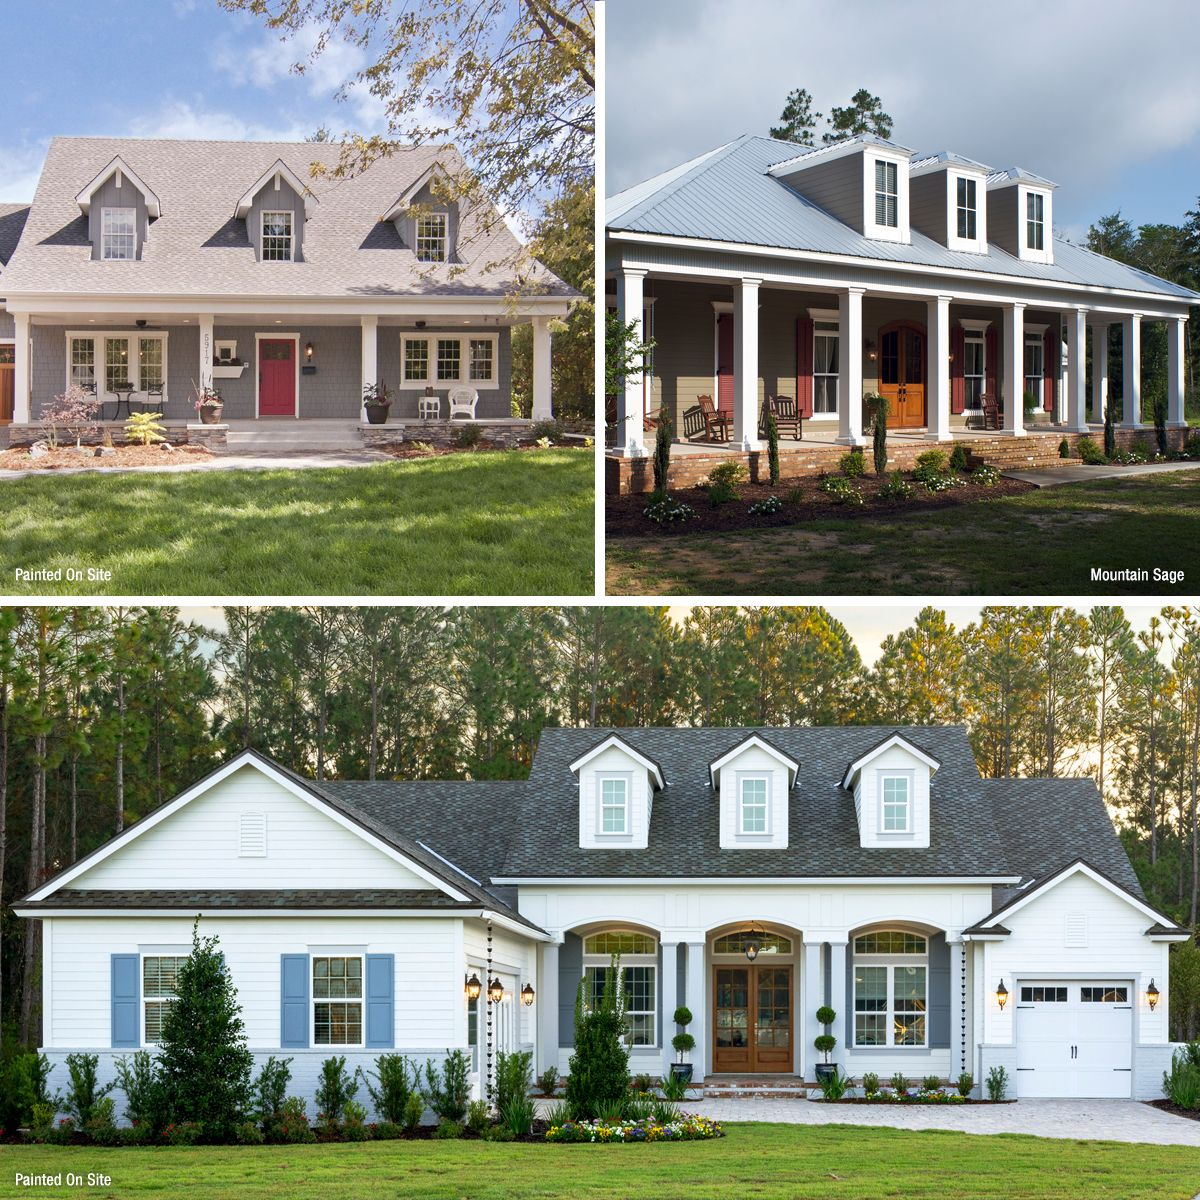 Home Exterior Options: Cape Cod House Color Ideas: Get Inspired With Siding